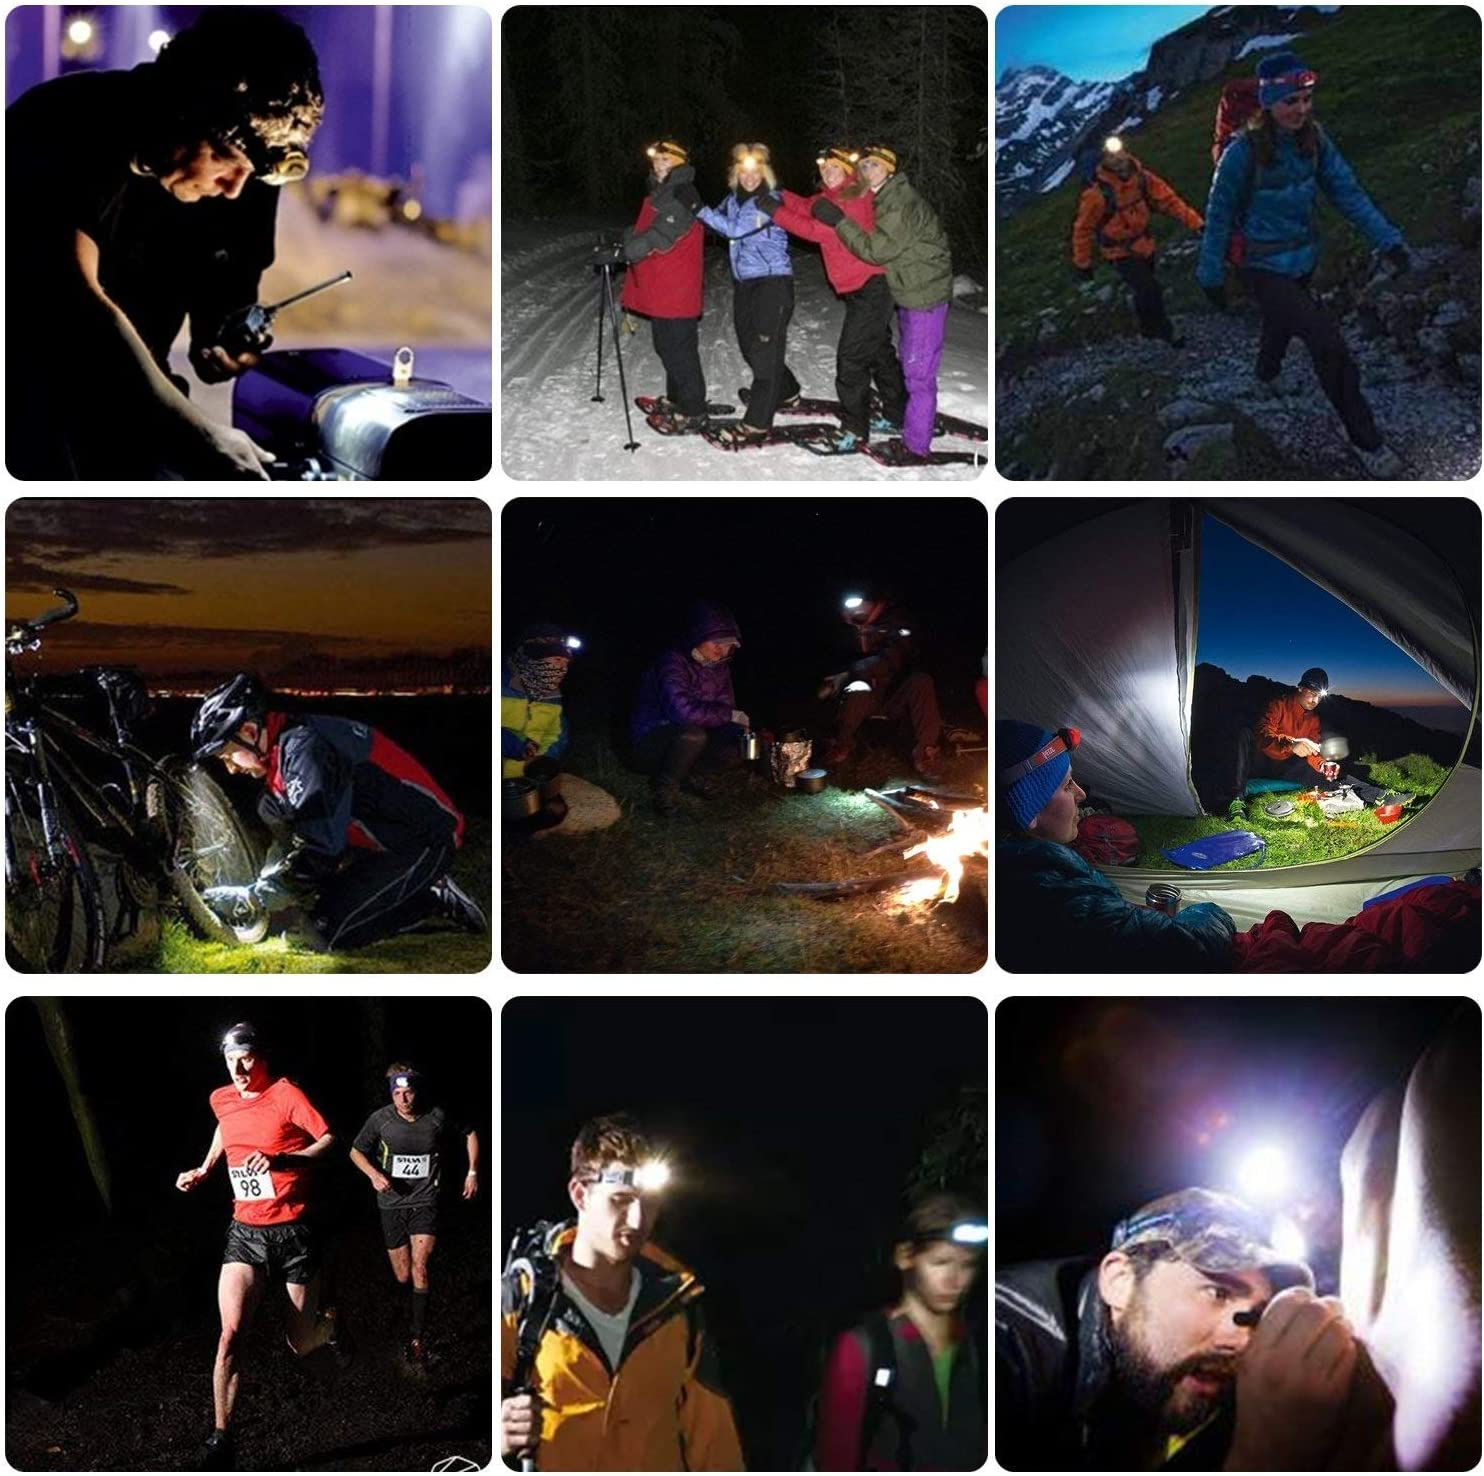 12 AAA batteries included /… Waterproof Head Light for Running Zukvye Dimmable Headlamp Camping Ultra Bright 230 Lumen White /& Red LED Headlamps DIY /& More